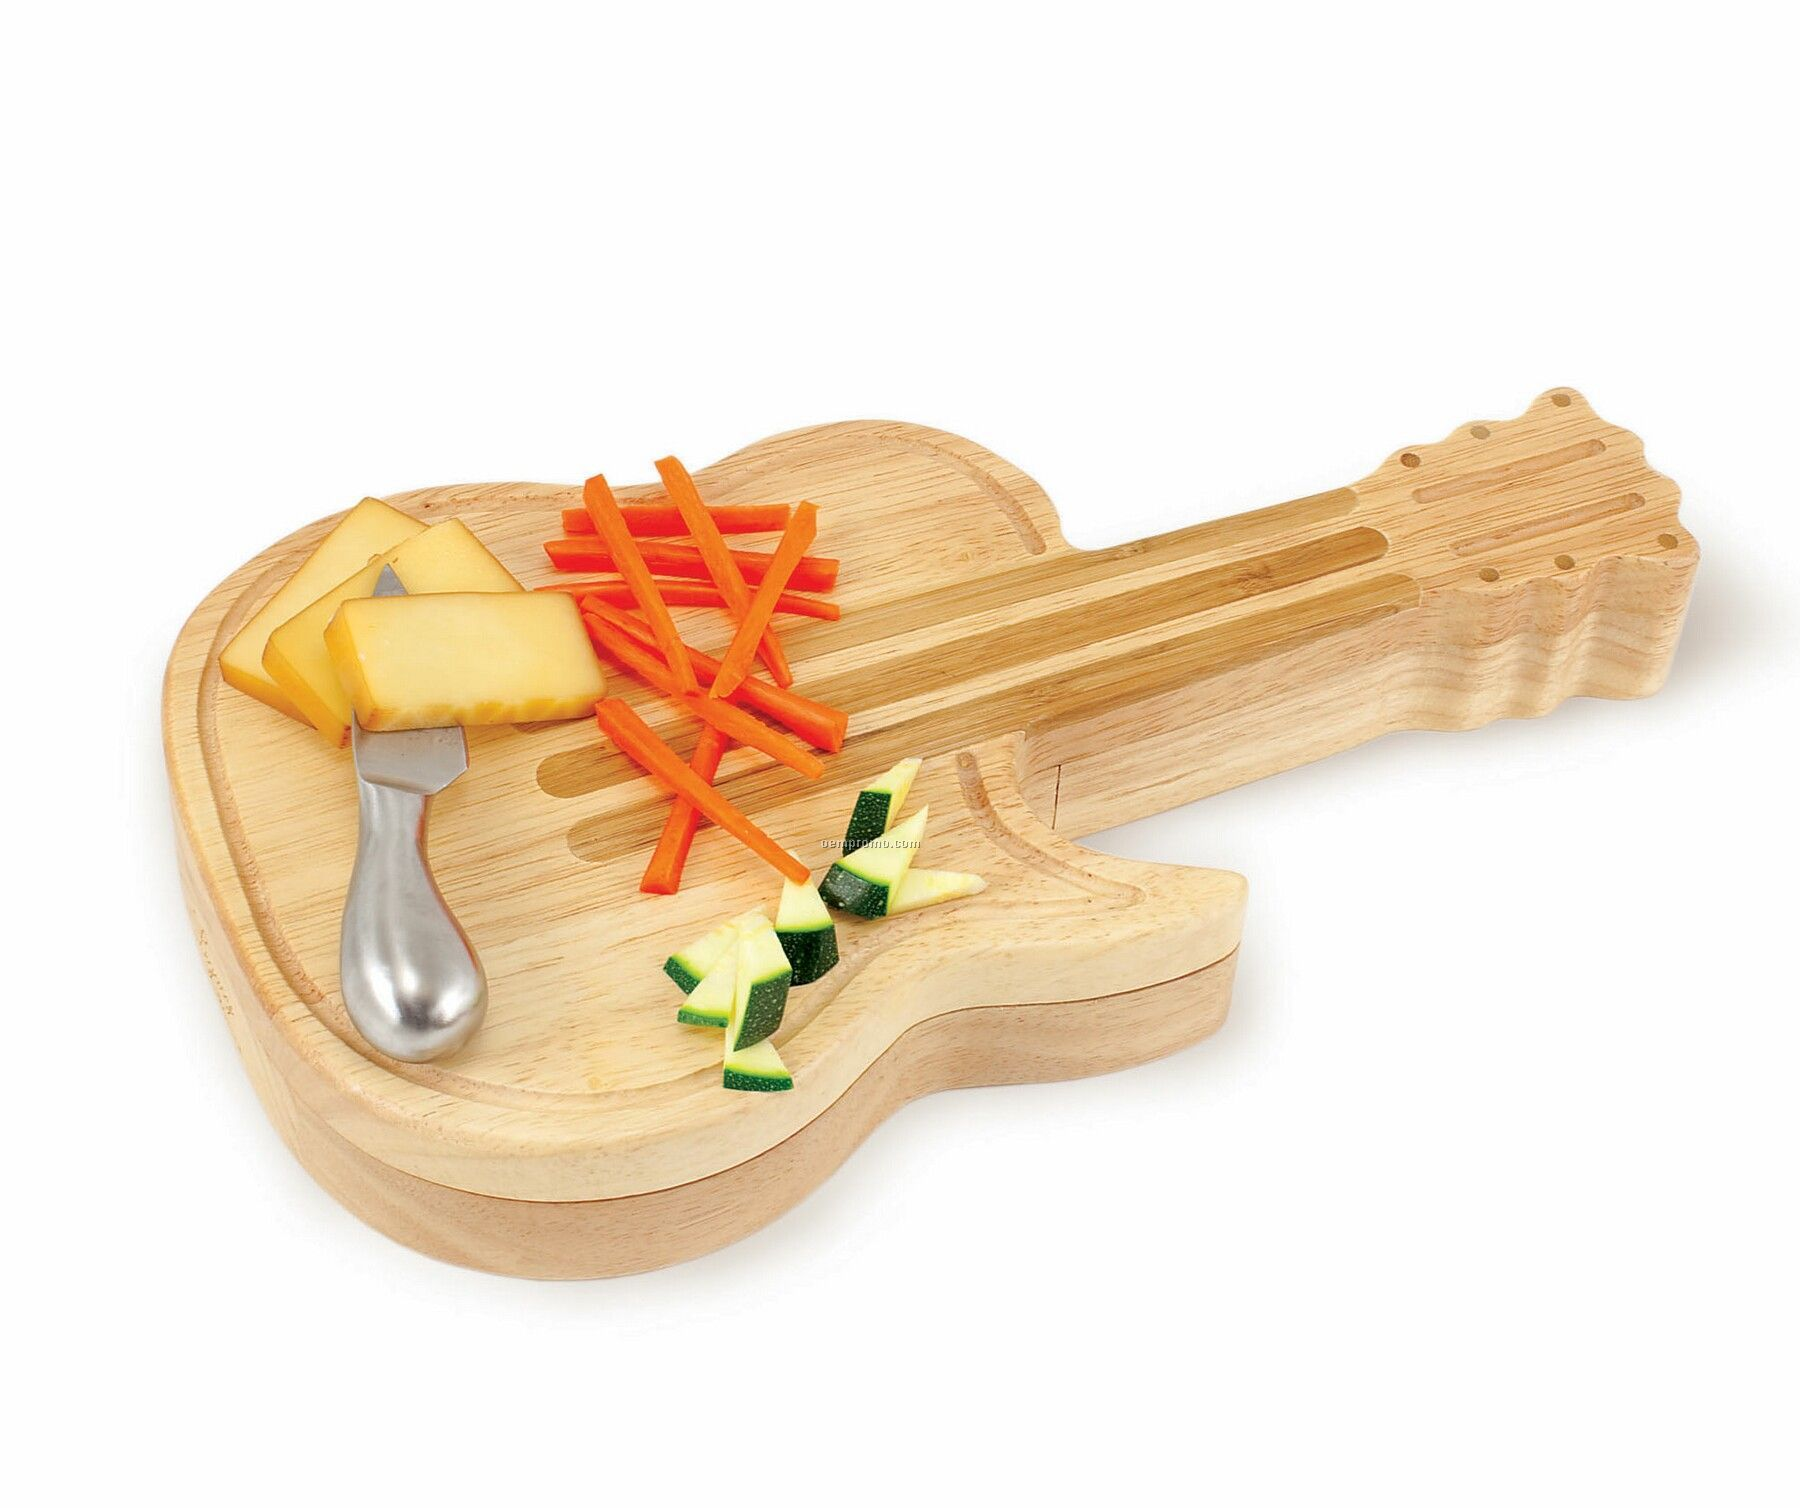 Guitar Shaped Rubber Wood Cutting Board W/ 3 Wine & Cheese Tools